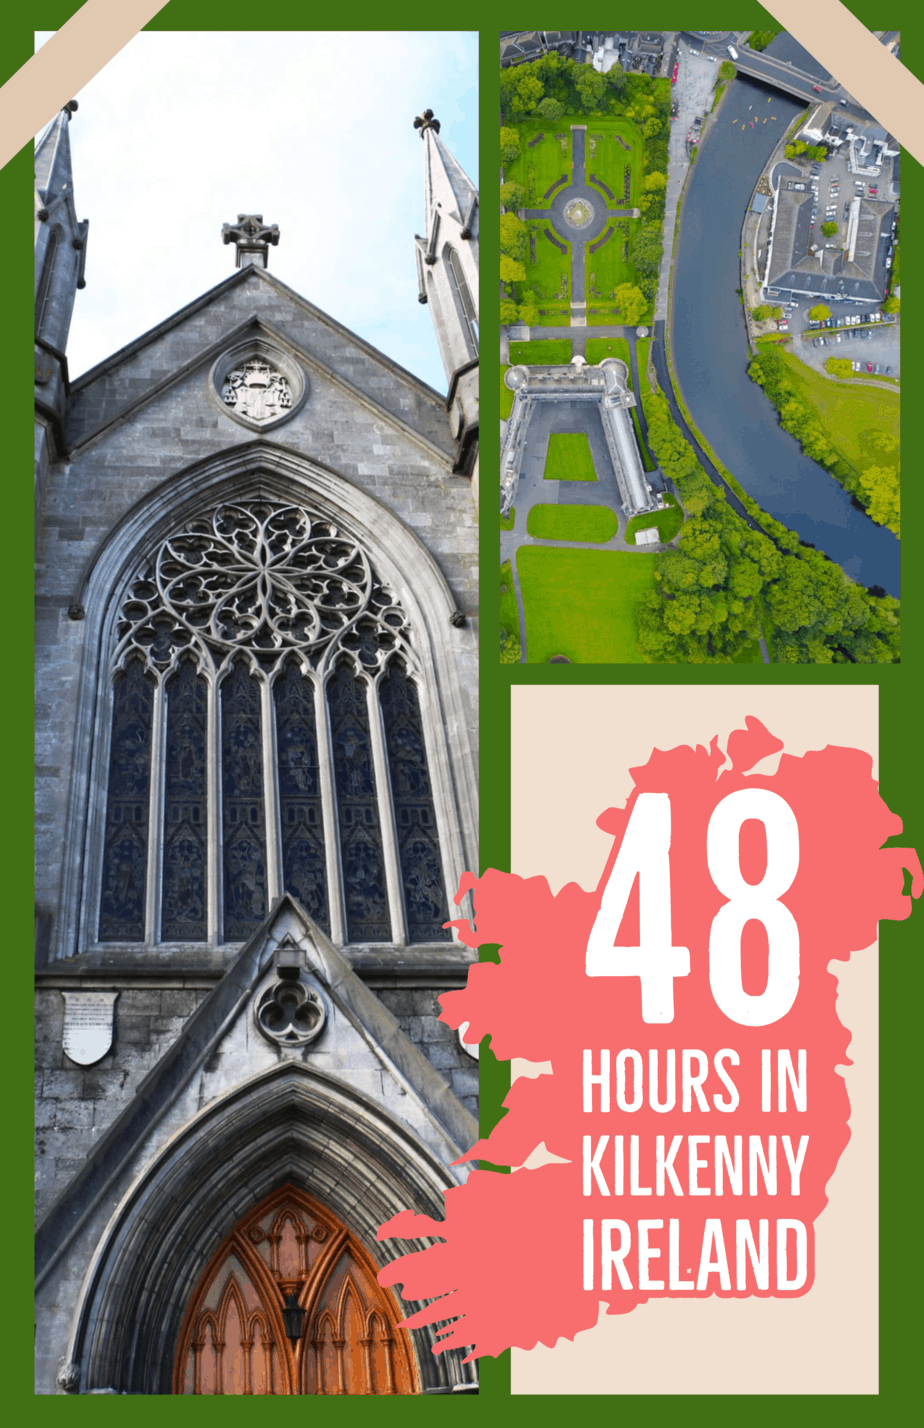 The Best Things To Do In Kilkenny - 48 Hours In Kilkenny